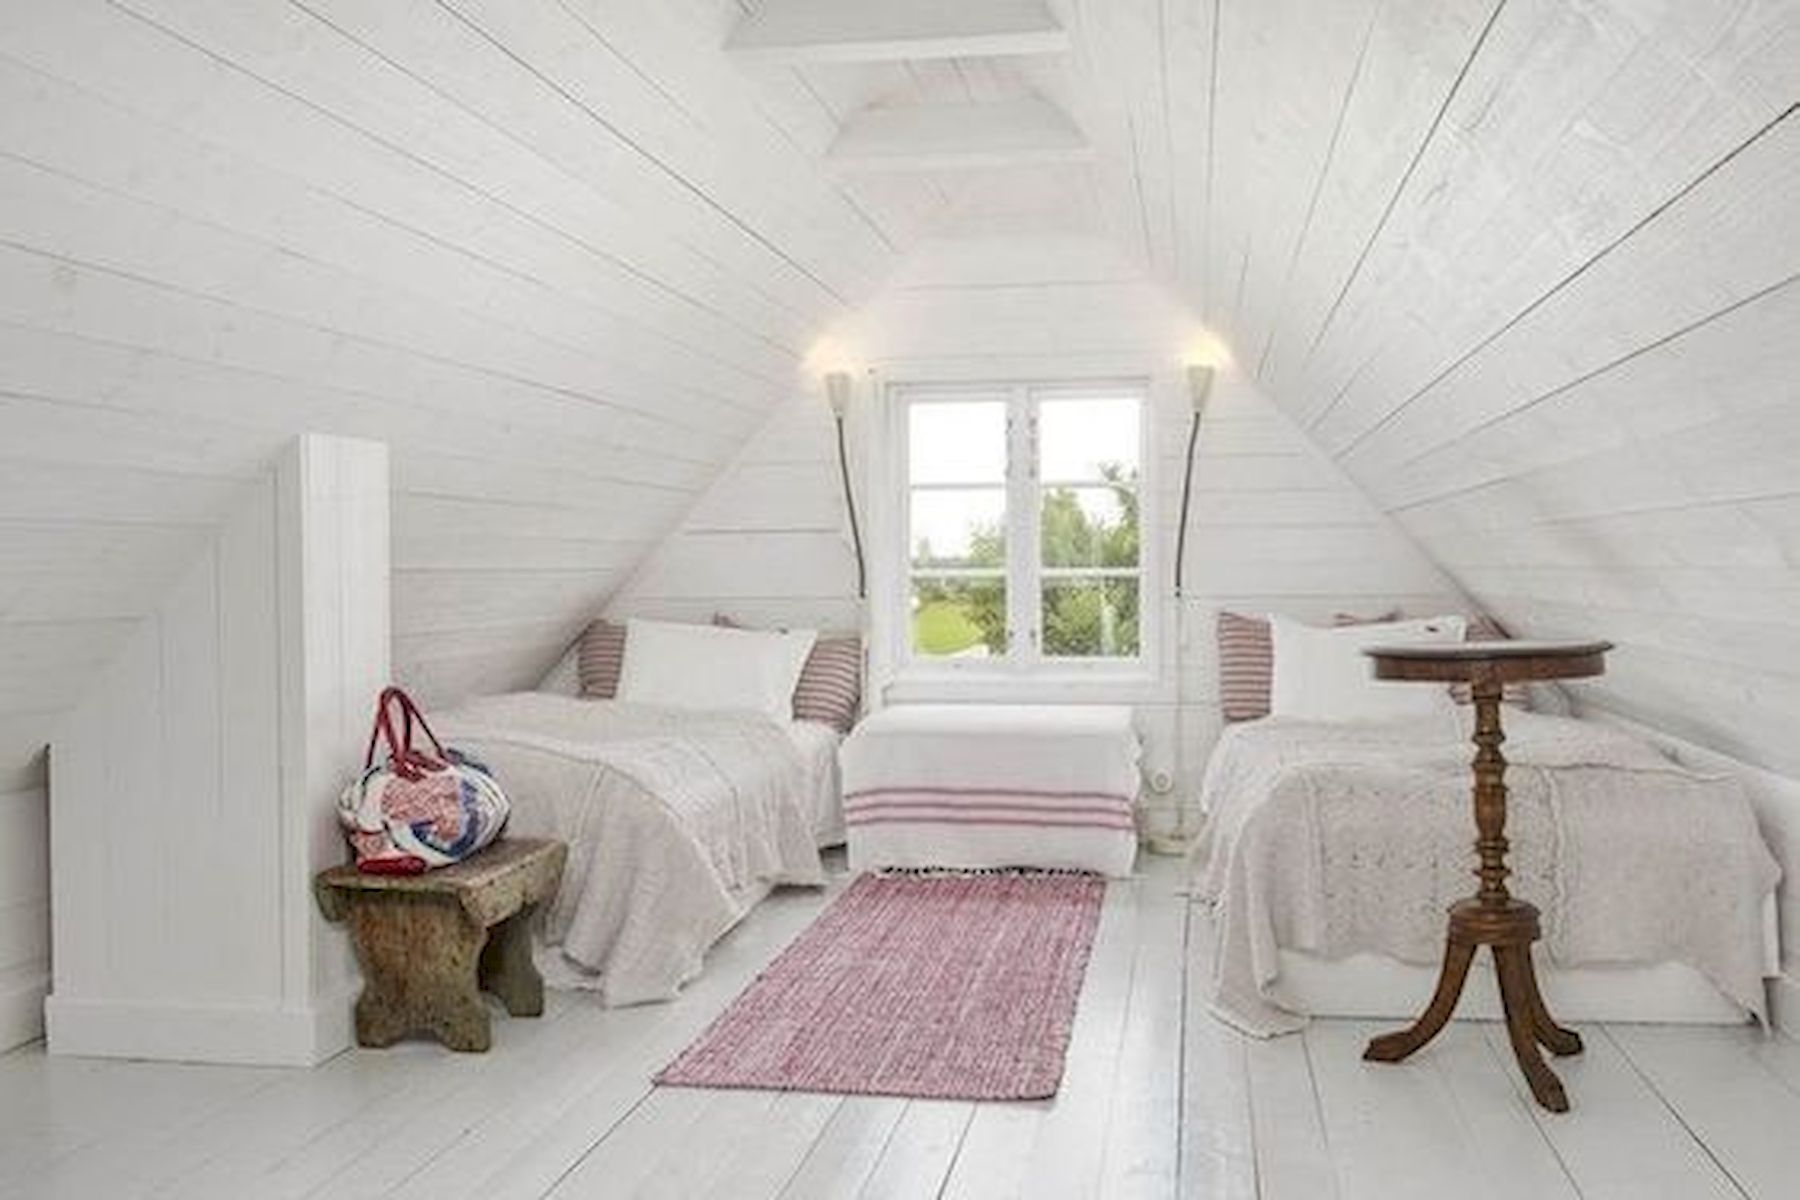 40 Awesome Attic Bedroom Design and Decorating Ideas (11)